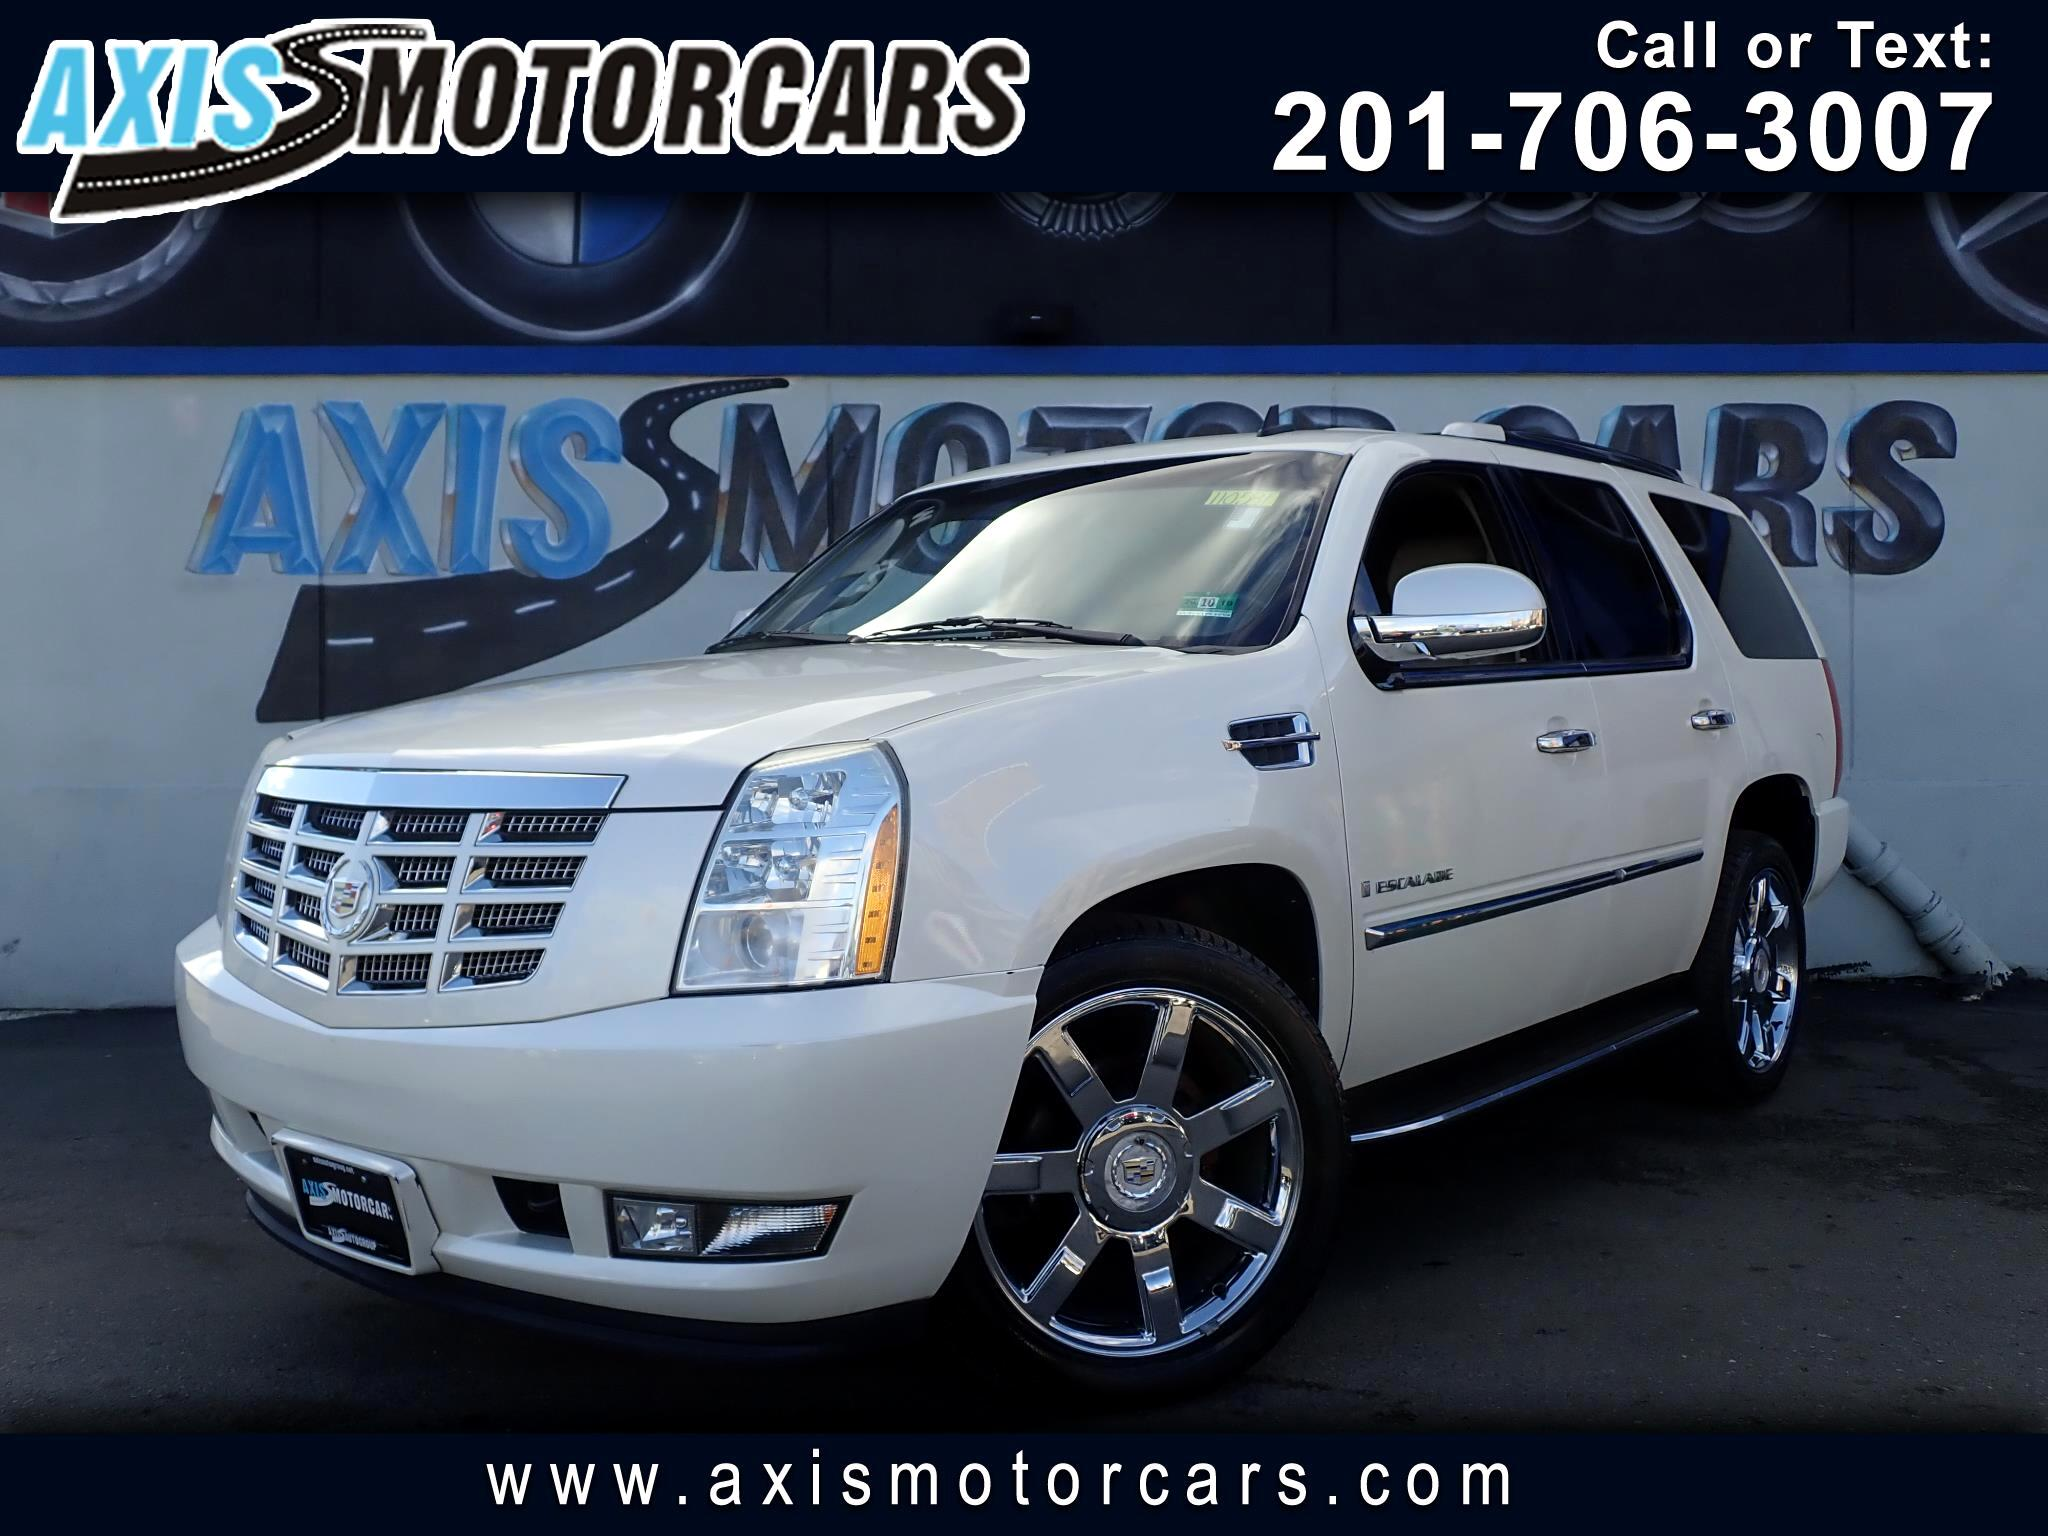 2009 Cadillac Escalade Luxury w/Navigation Rear Entertainment System